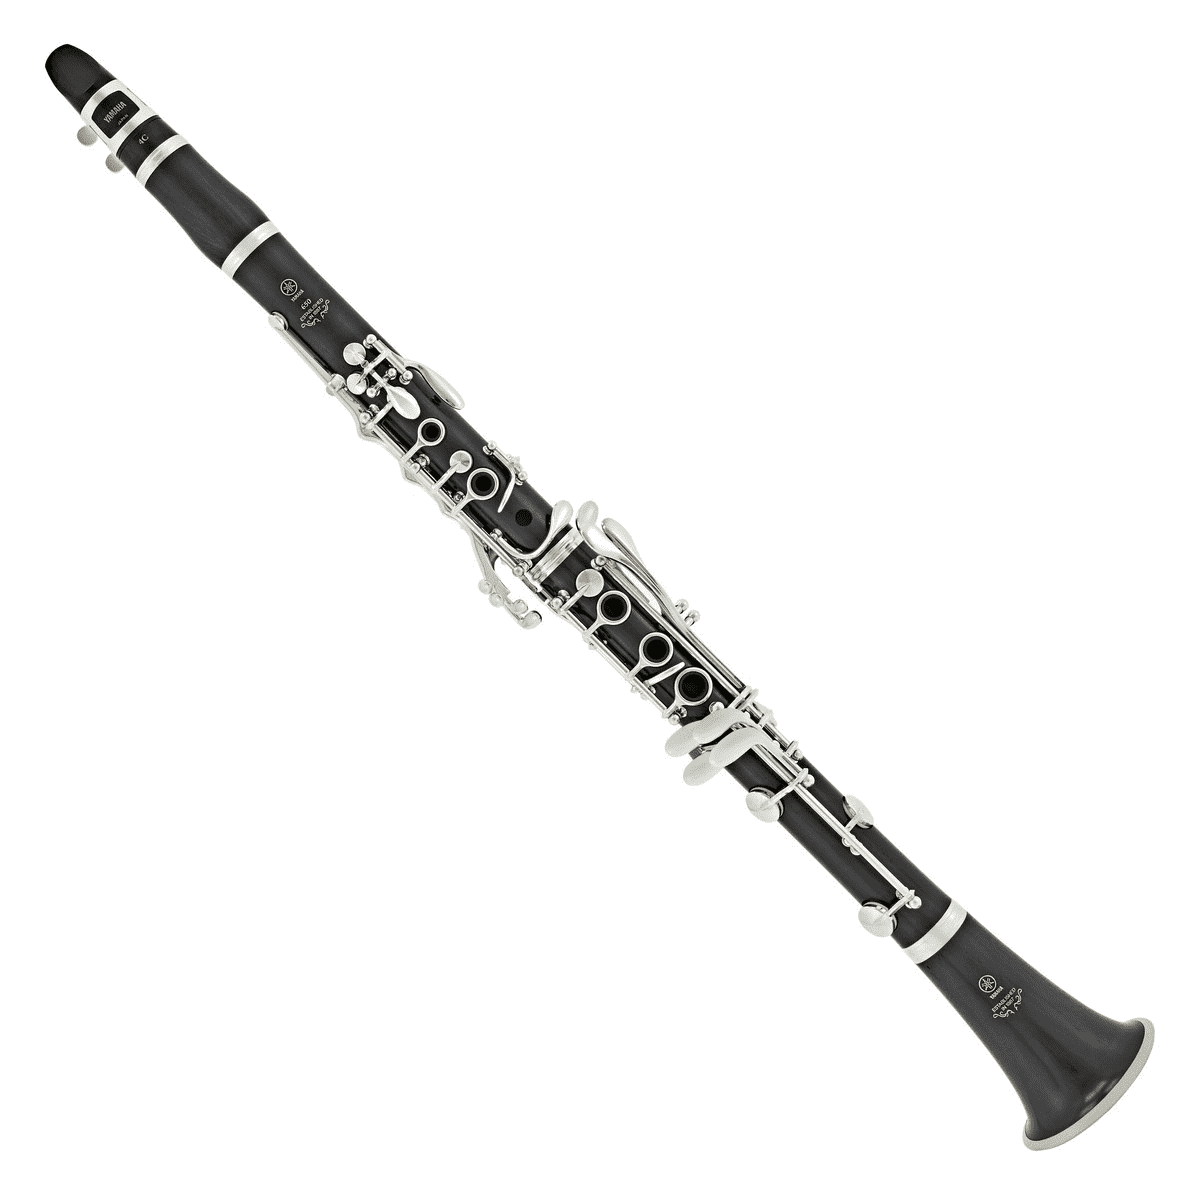 ficheros/productos/603275CLARINETE YAMAHA YCL 650.png